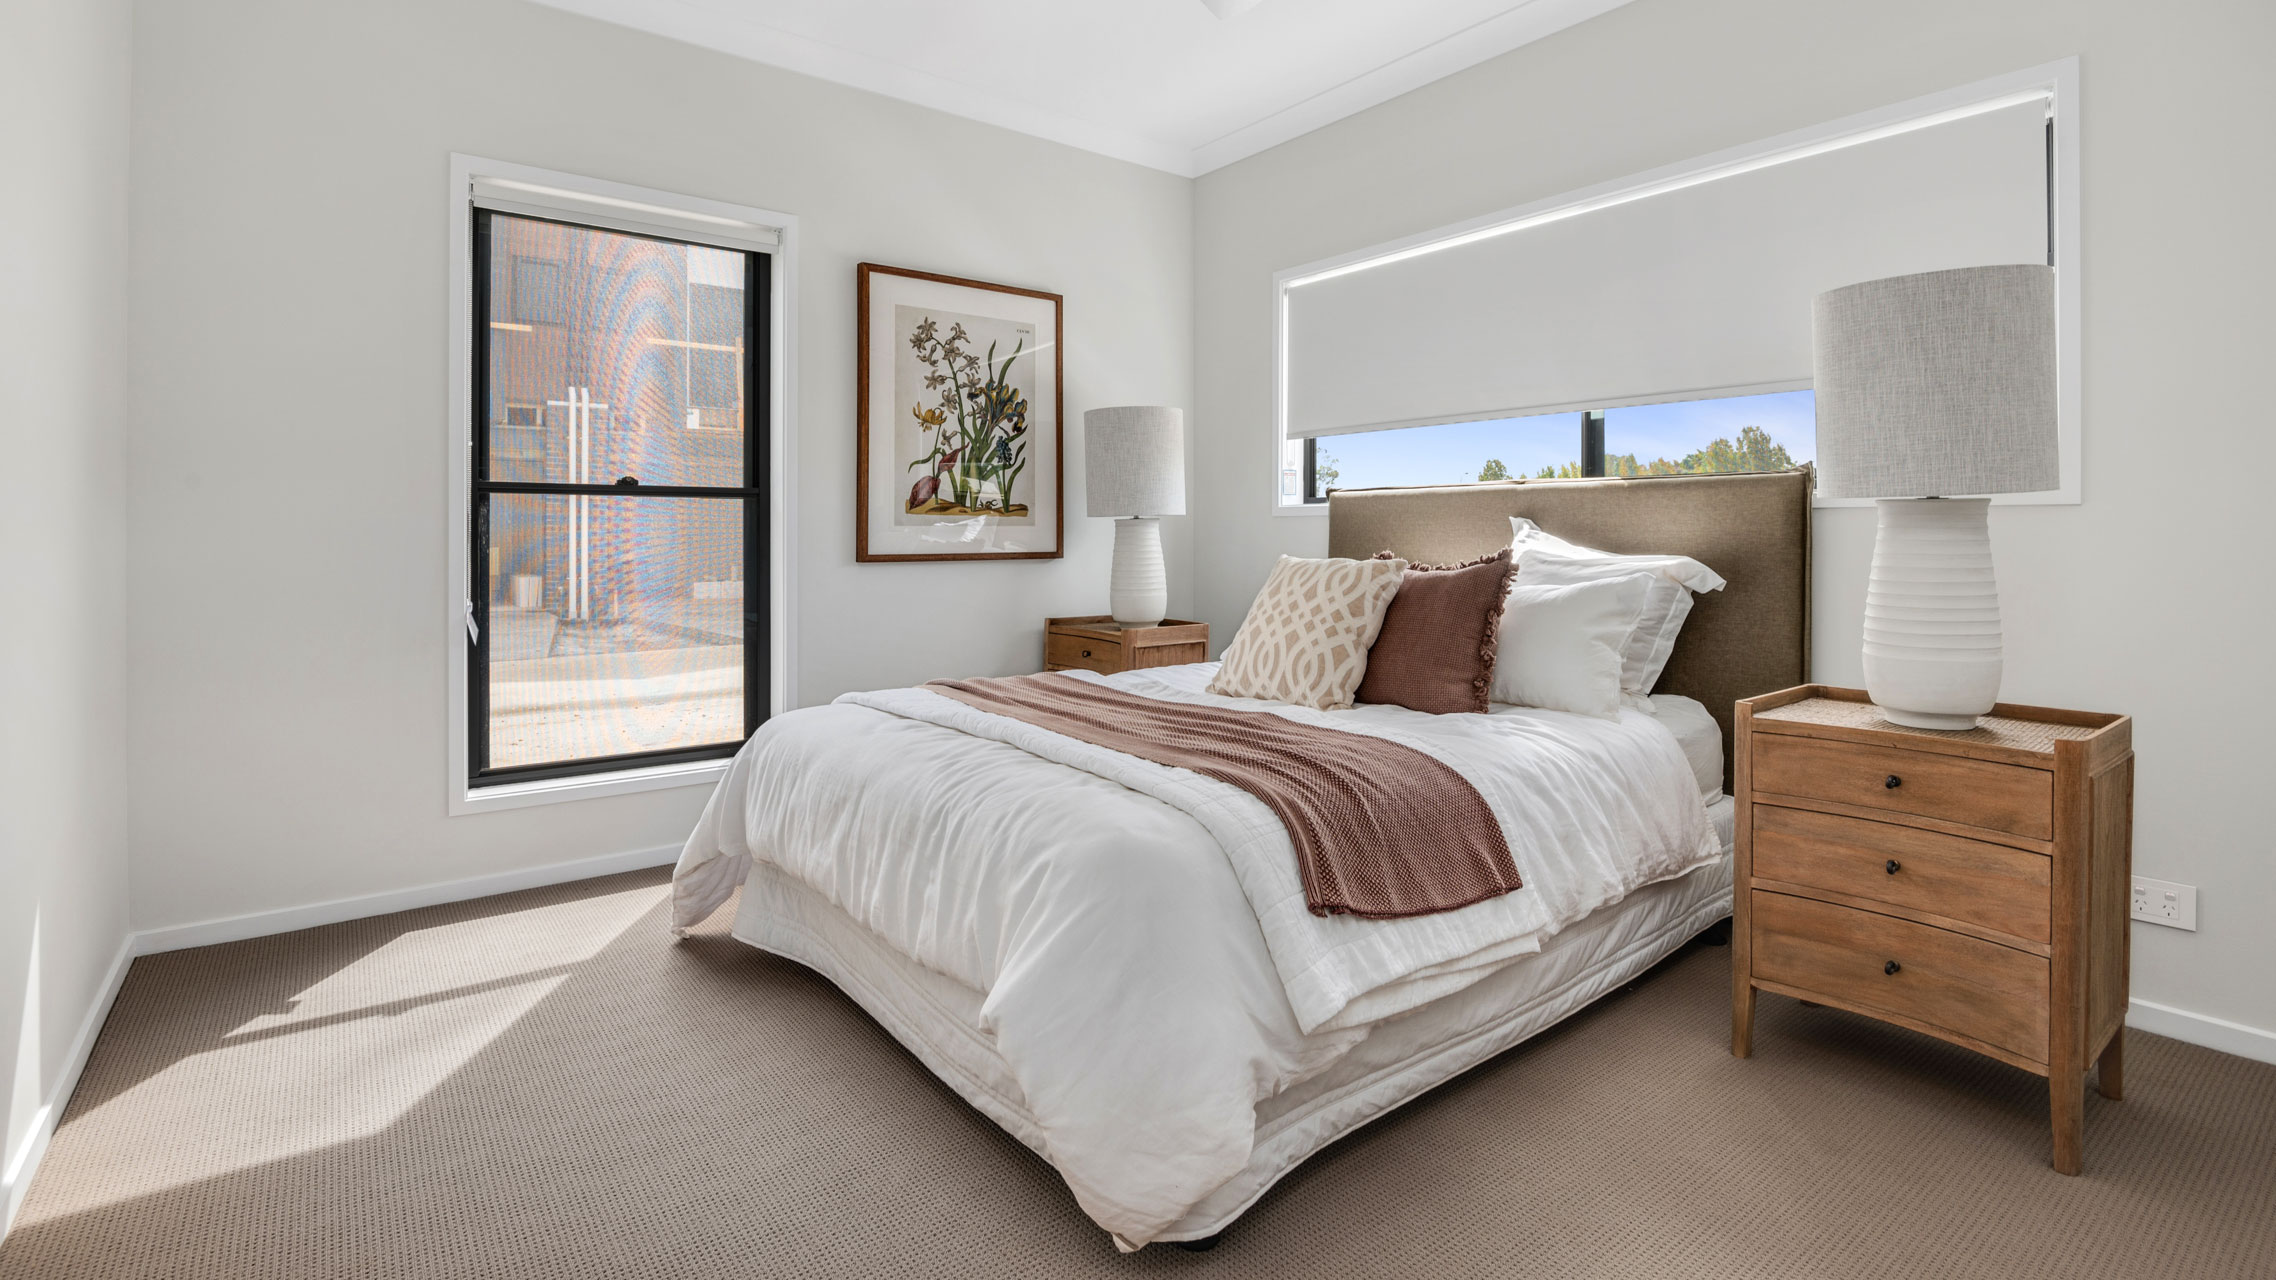 Black Double Hung Window in a bedroom